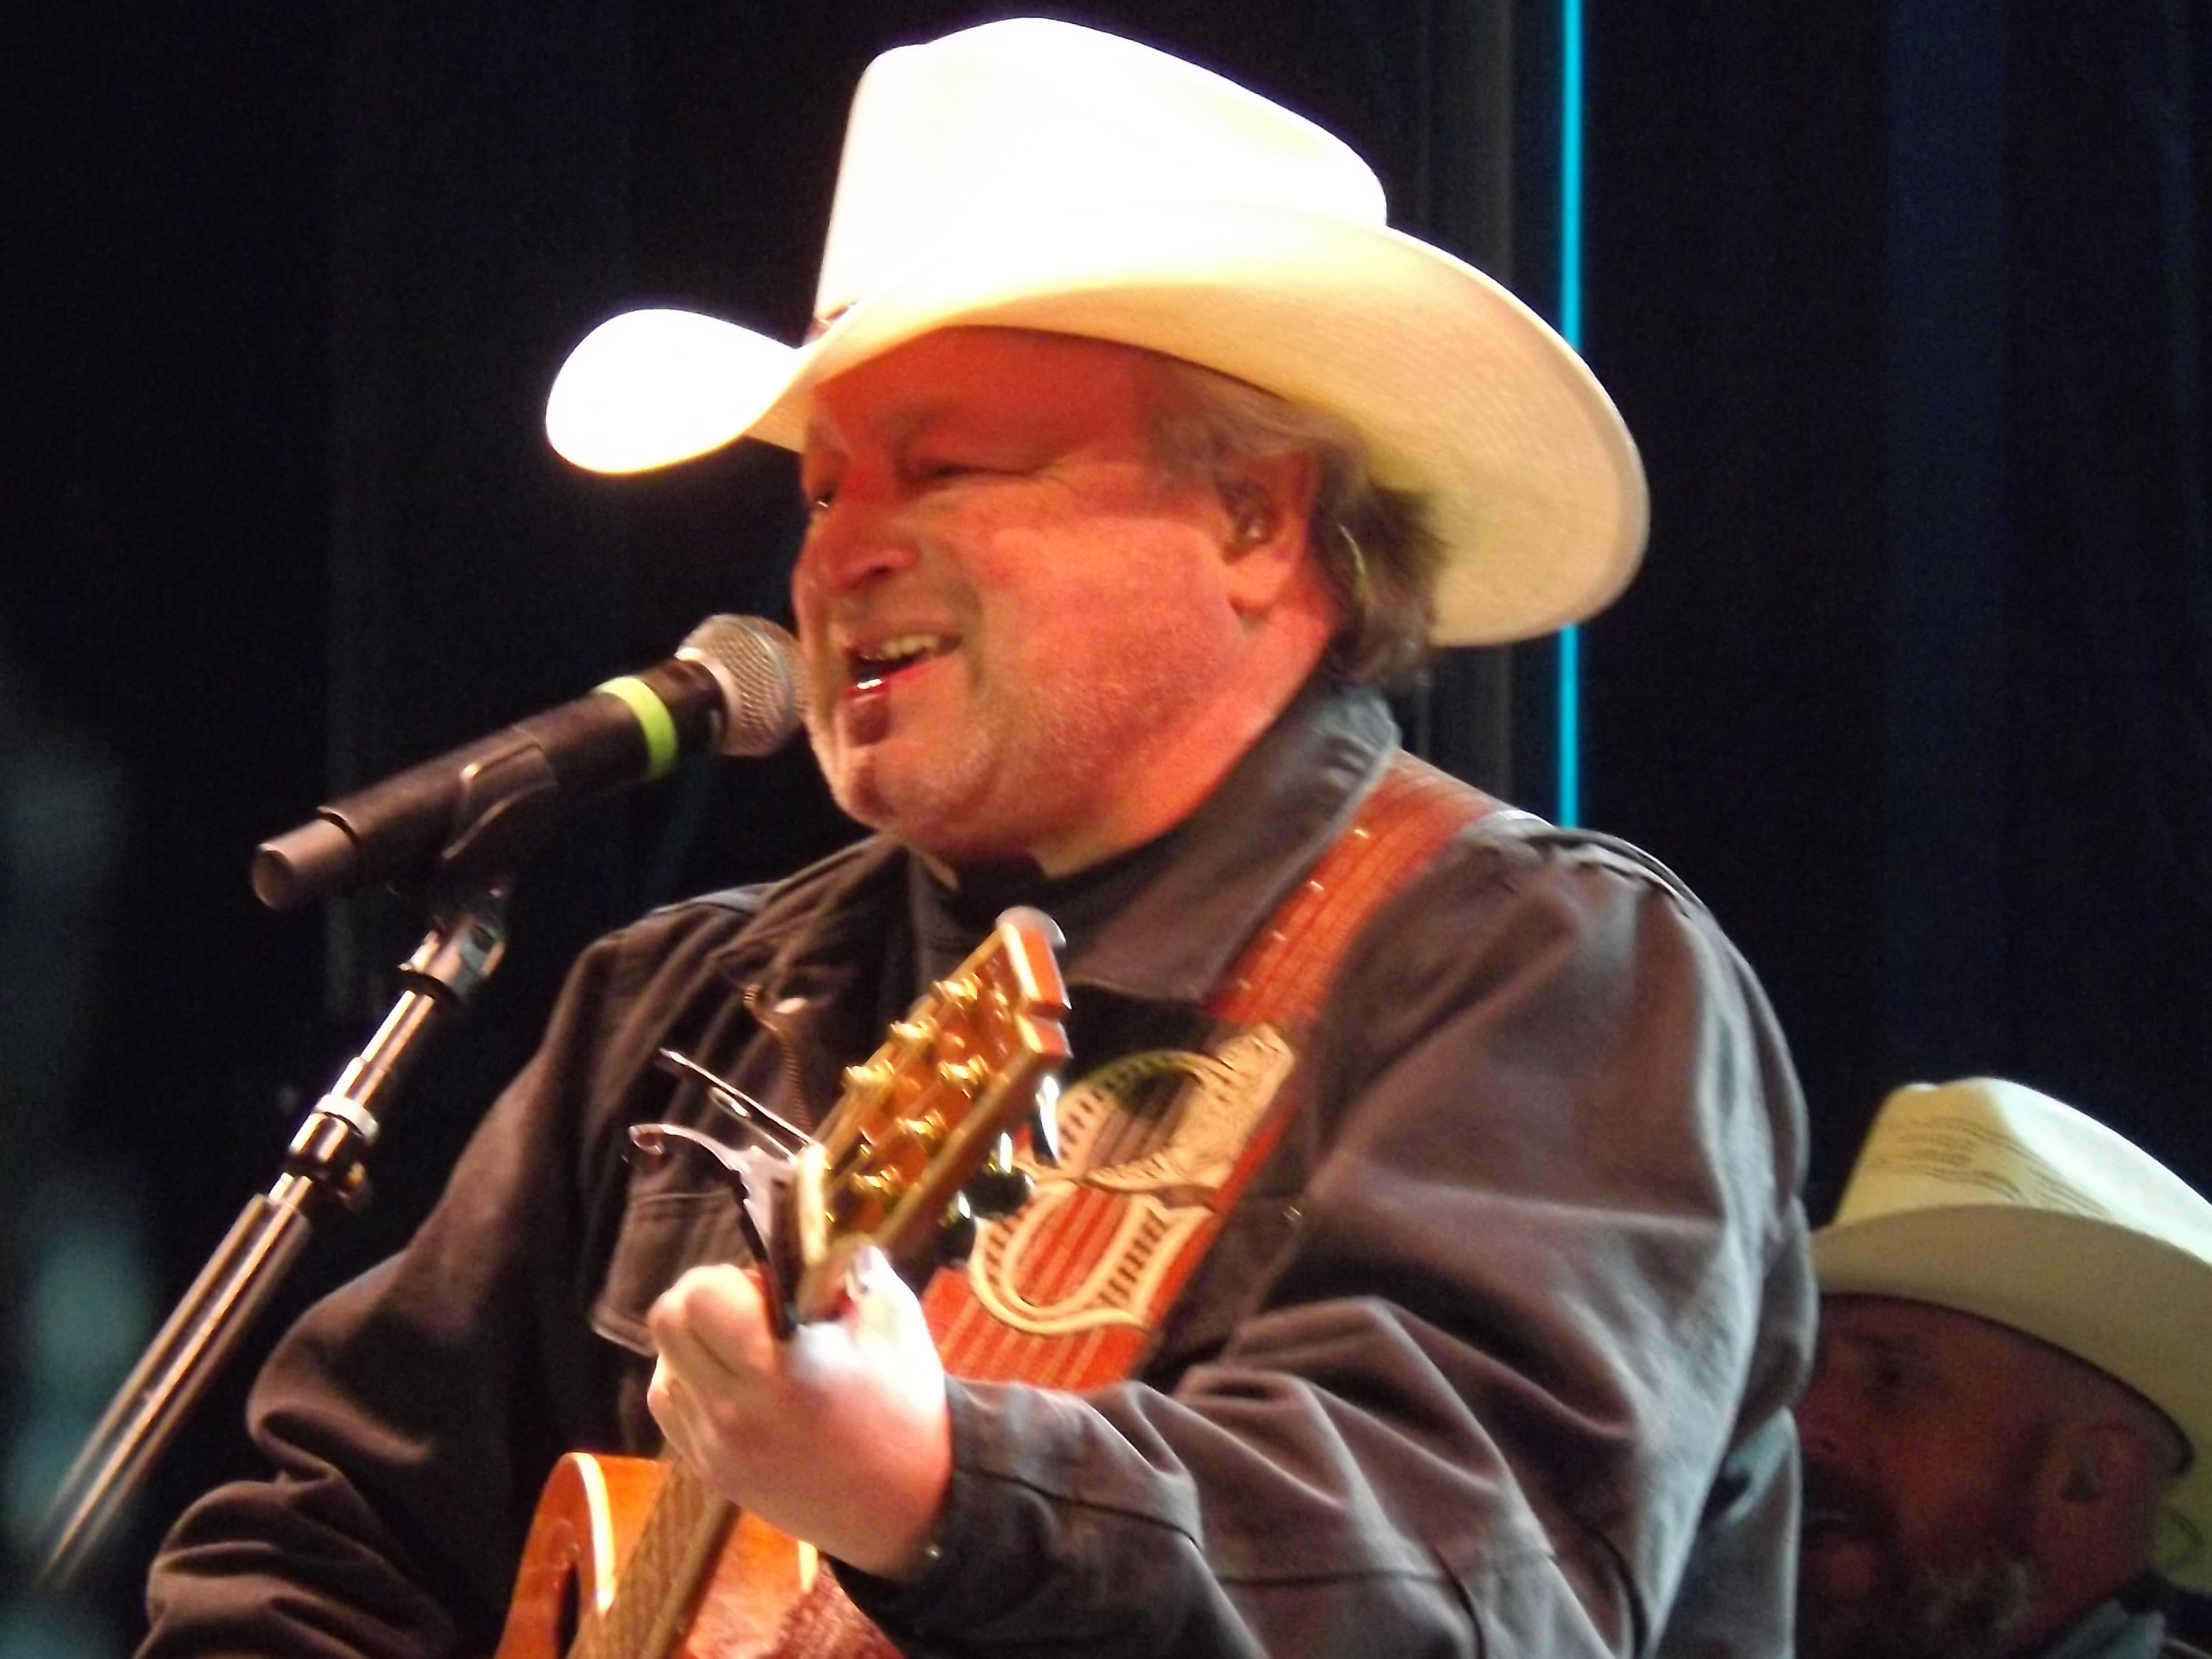 Mark Chesnutt performed some of his greatest hits at Bayou Stock on Nov. 17 at the Sterlington Sports Complex in Sterlington, La. It was the first music festival hosted by country singer Dylan Scott, a Bastrop native. The event ran through the day, highlighted talent from Louisiana and ended with fireworks.